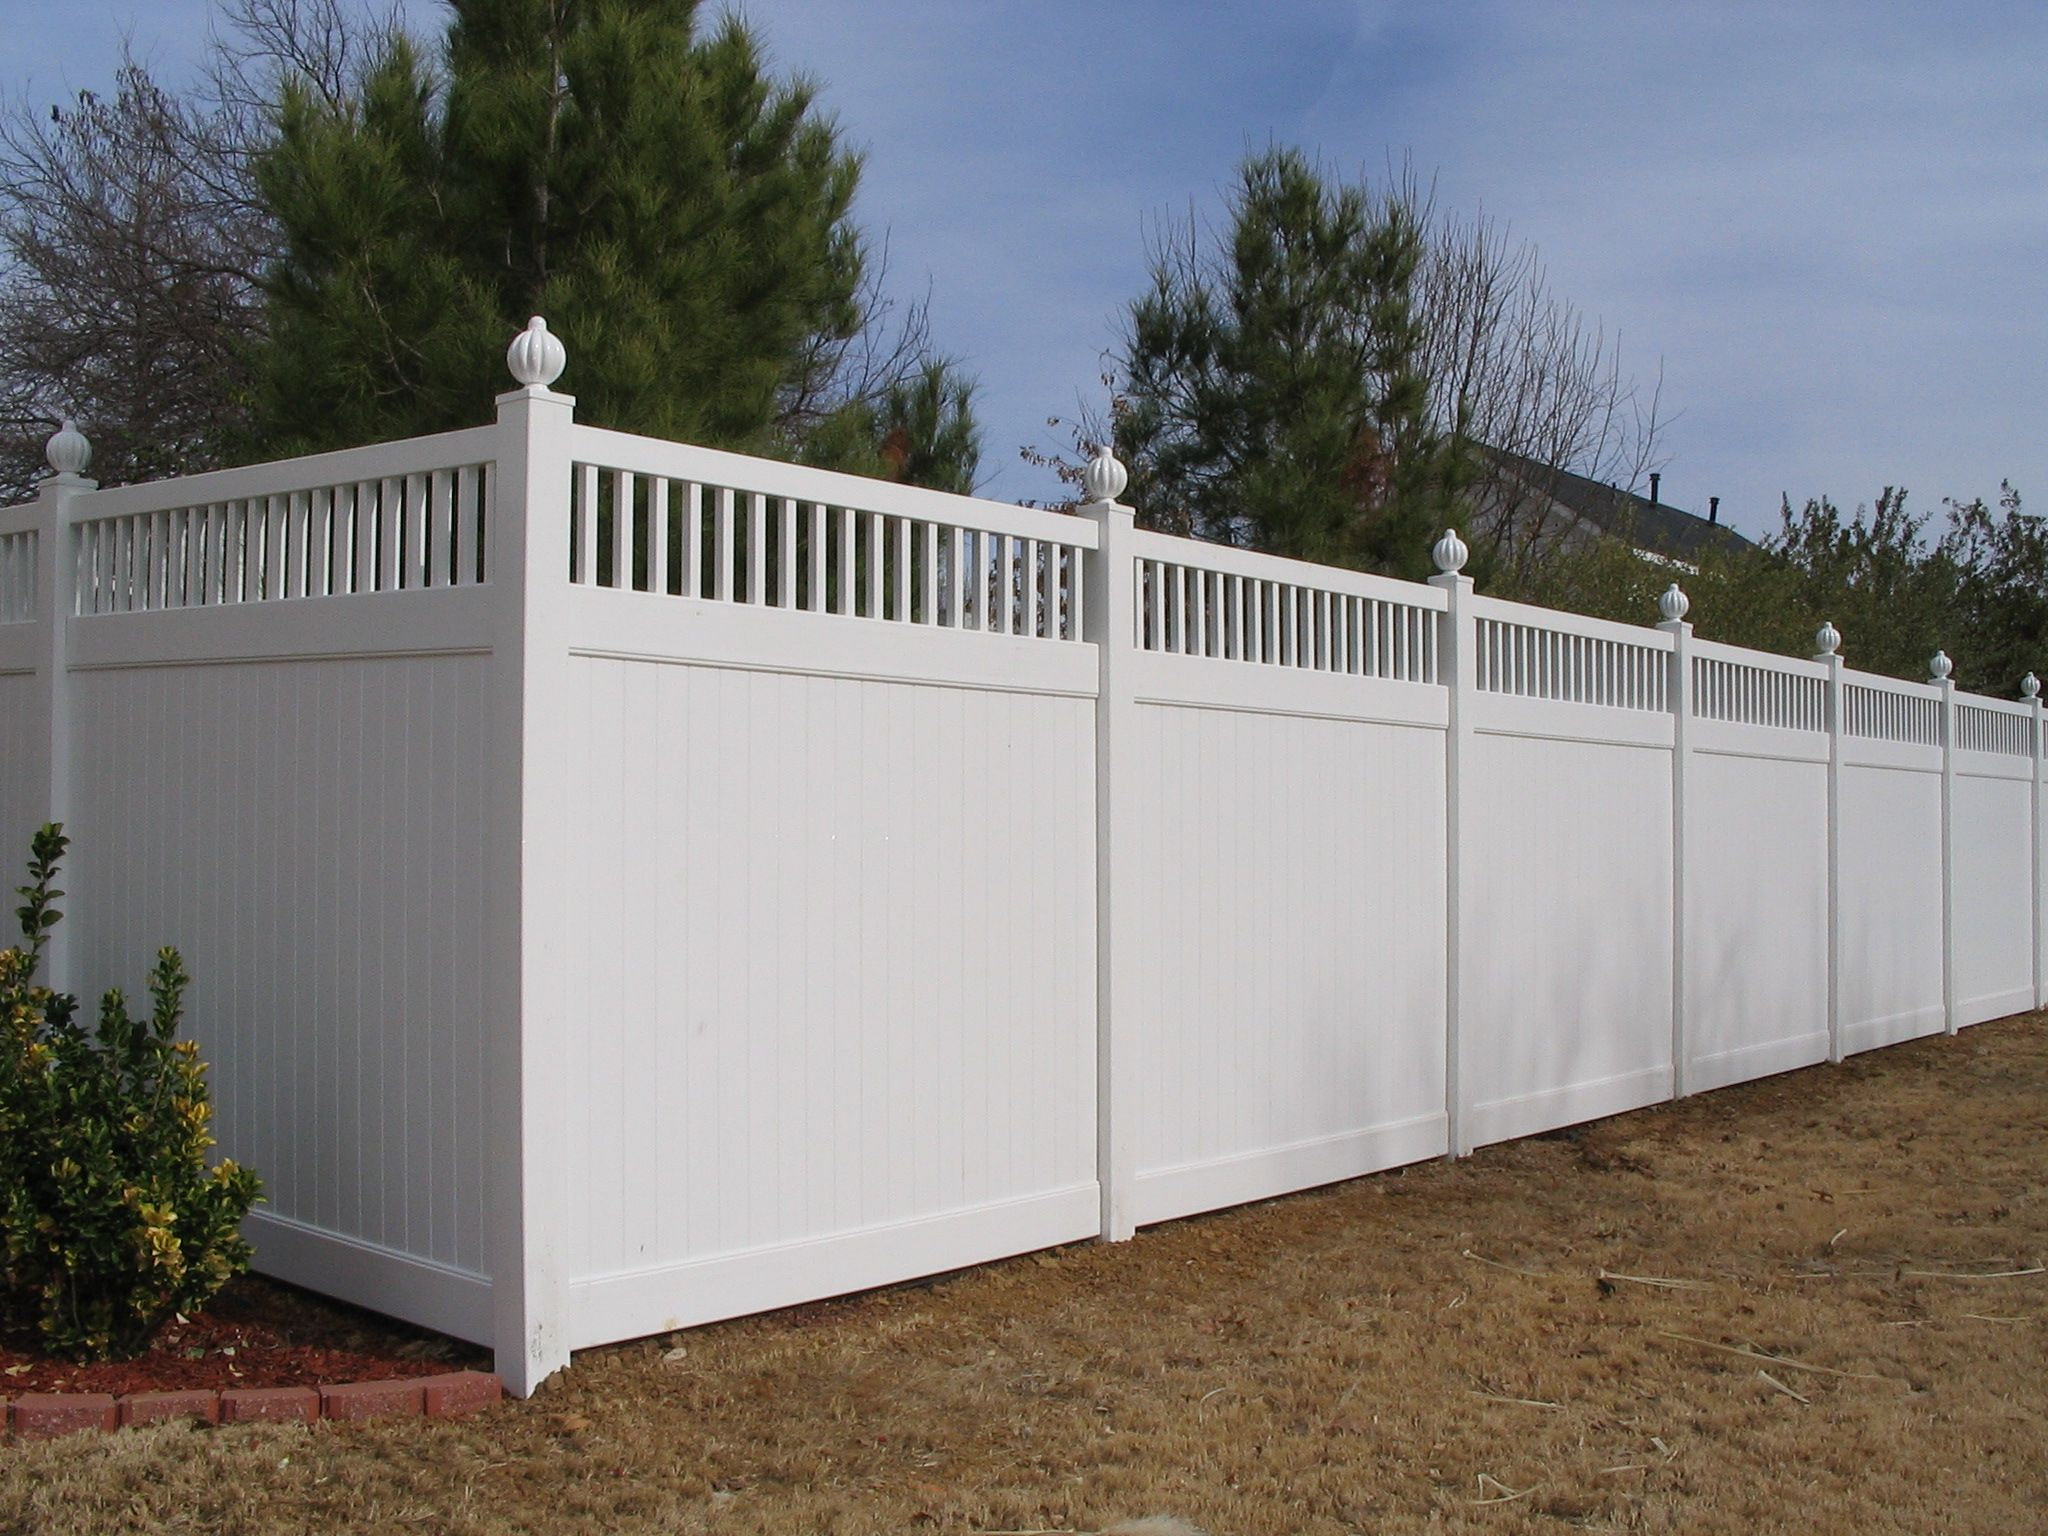 Classic manor privacy fence beautiful call future outdoors for classic manor privacy fence beautiful call future outdoors for a free estimate baanklon Gallery